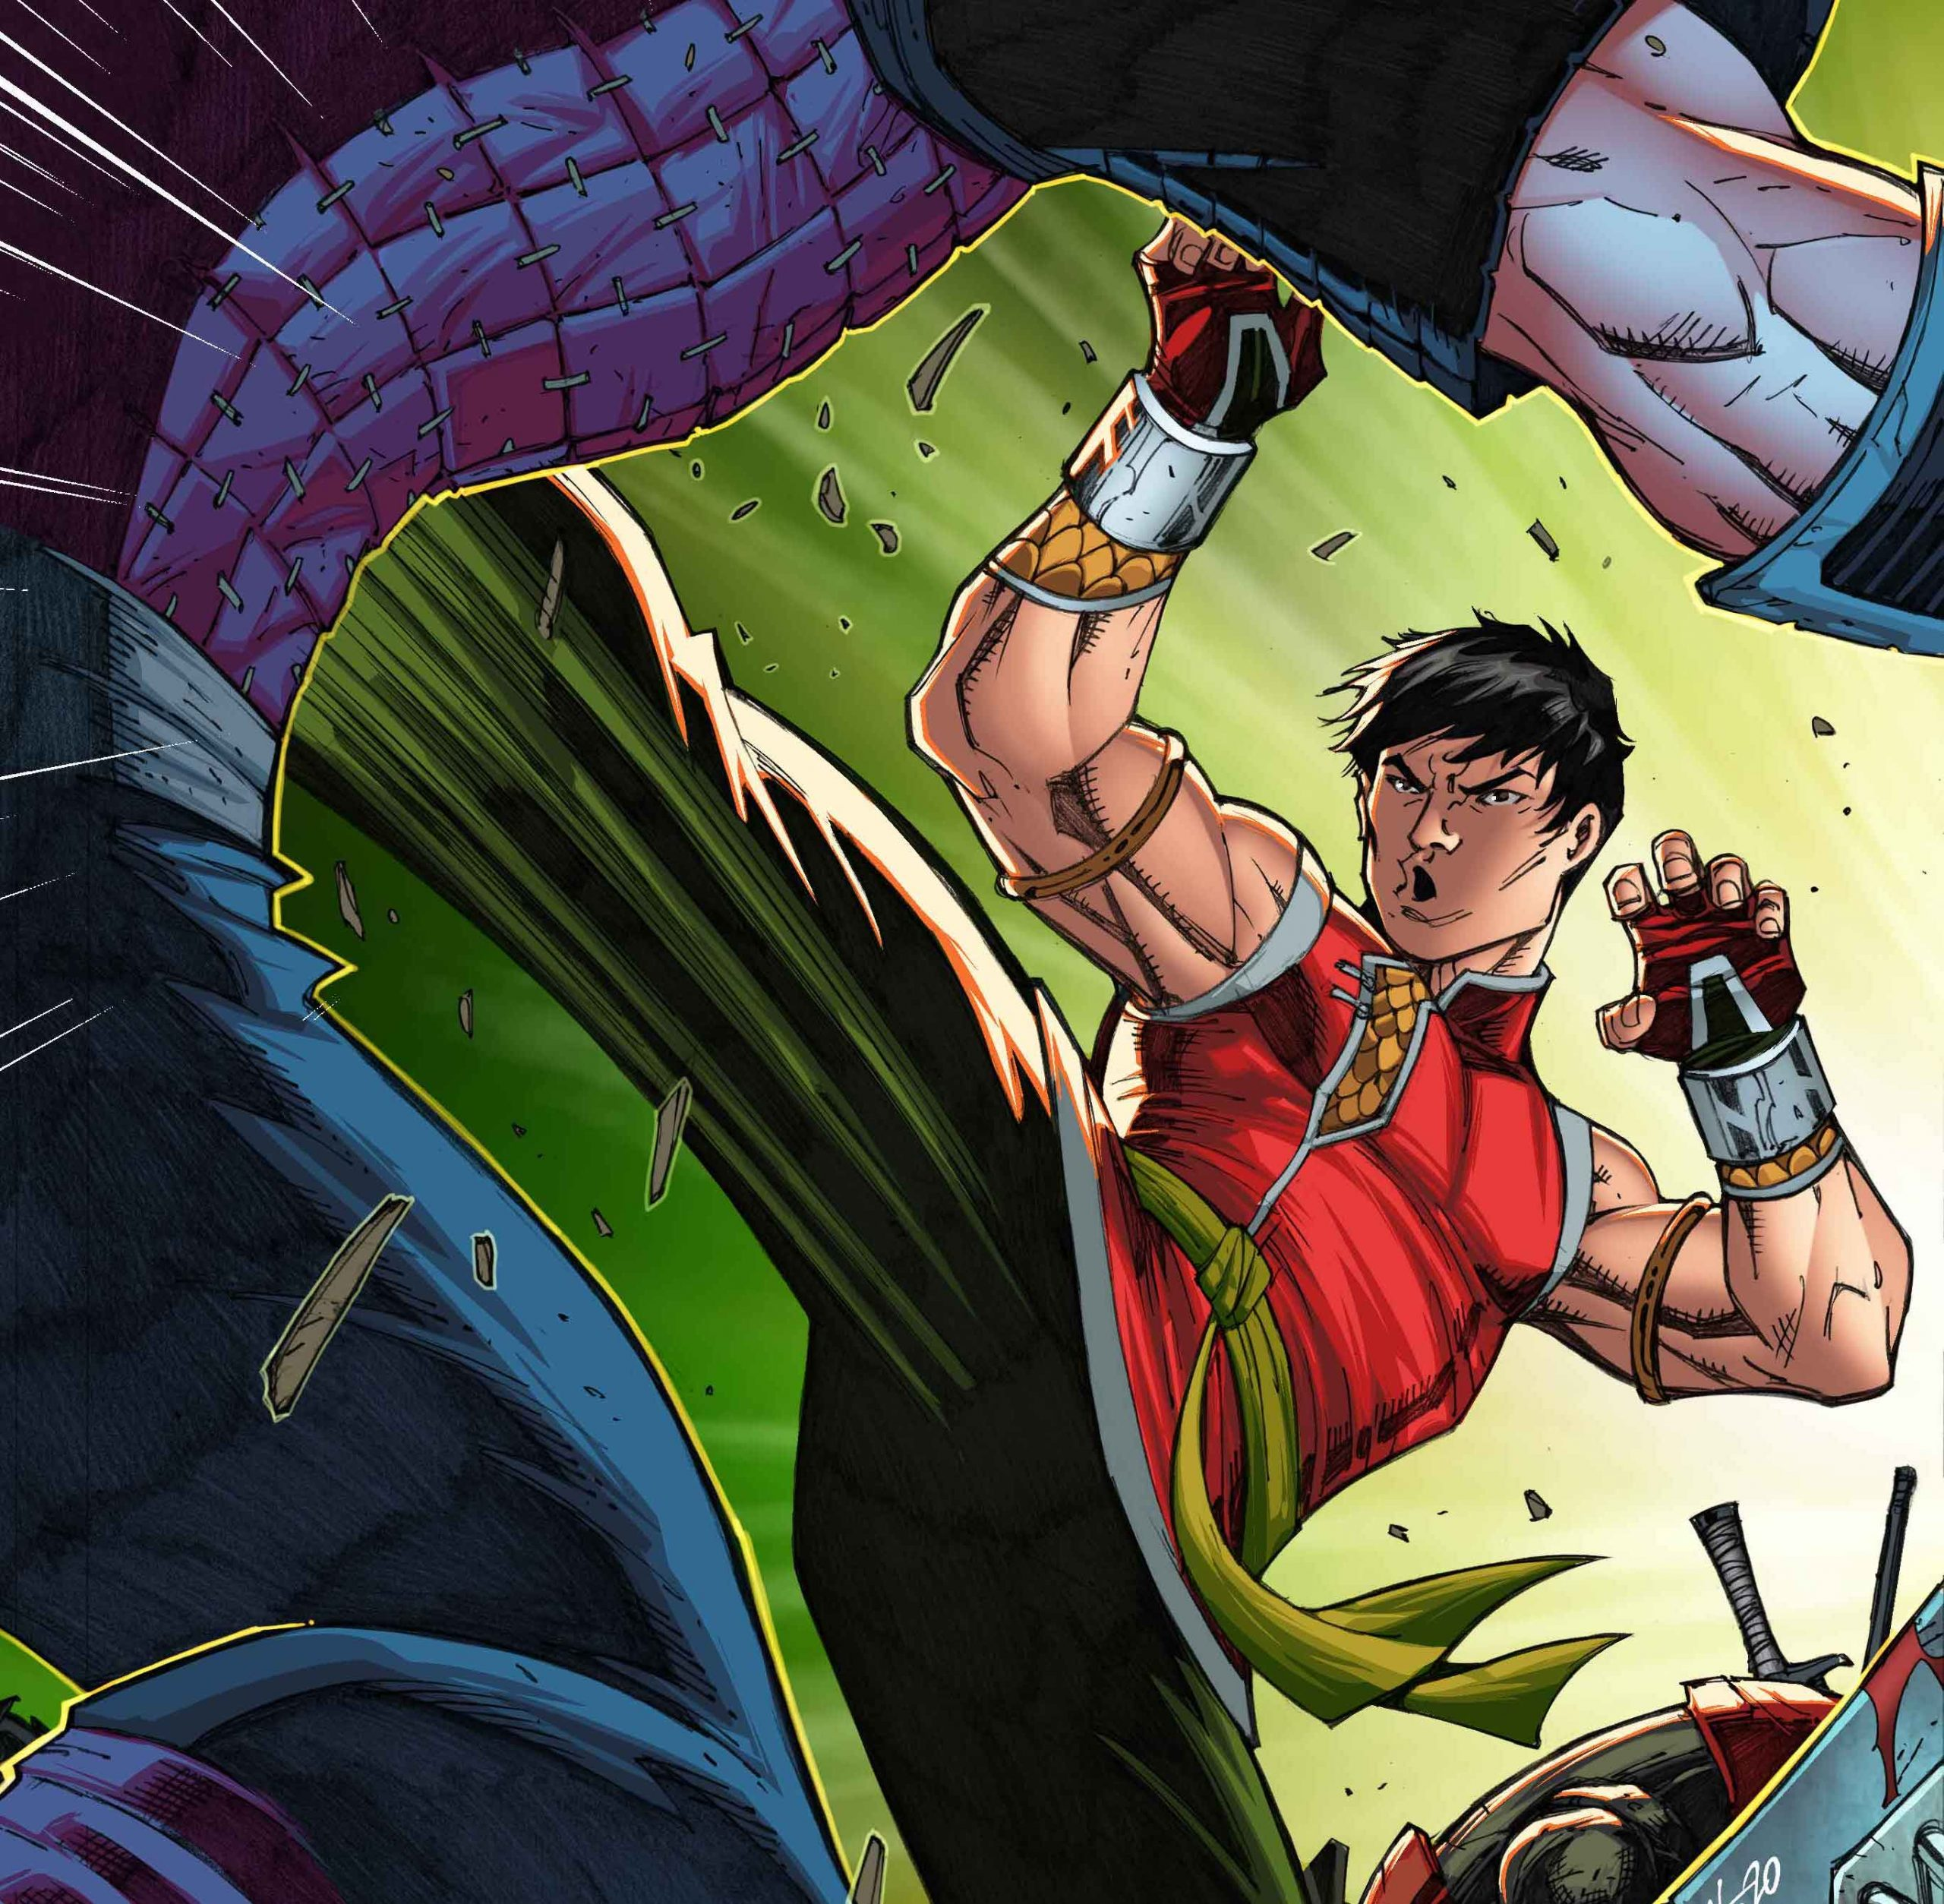 New Ron Lim 'Shang-Chi' #1 variant cover revealed ahead of September release.